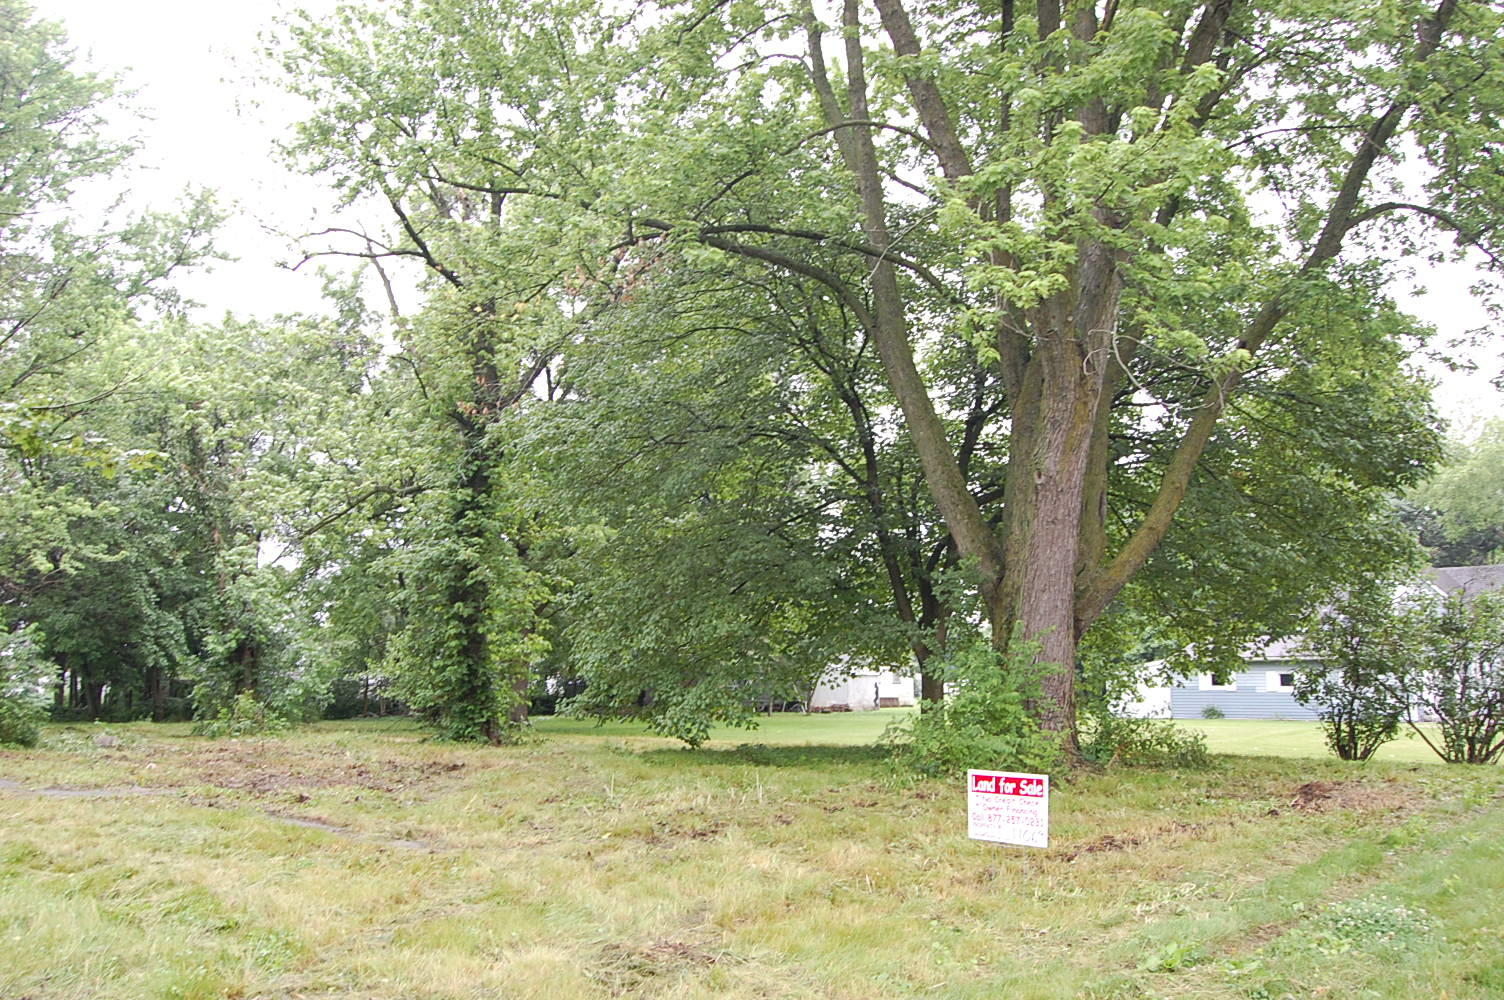 Illinois Midwest Living on One Third Acre Lot - Image 1